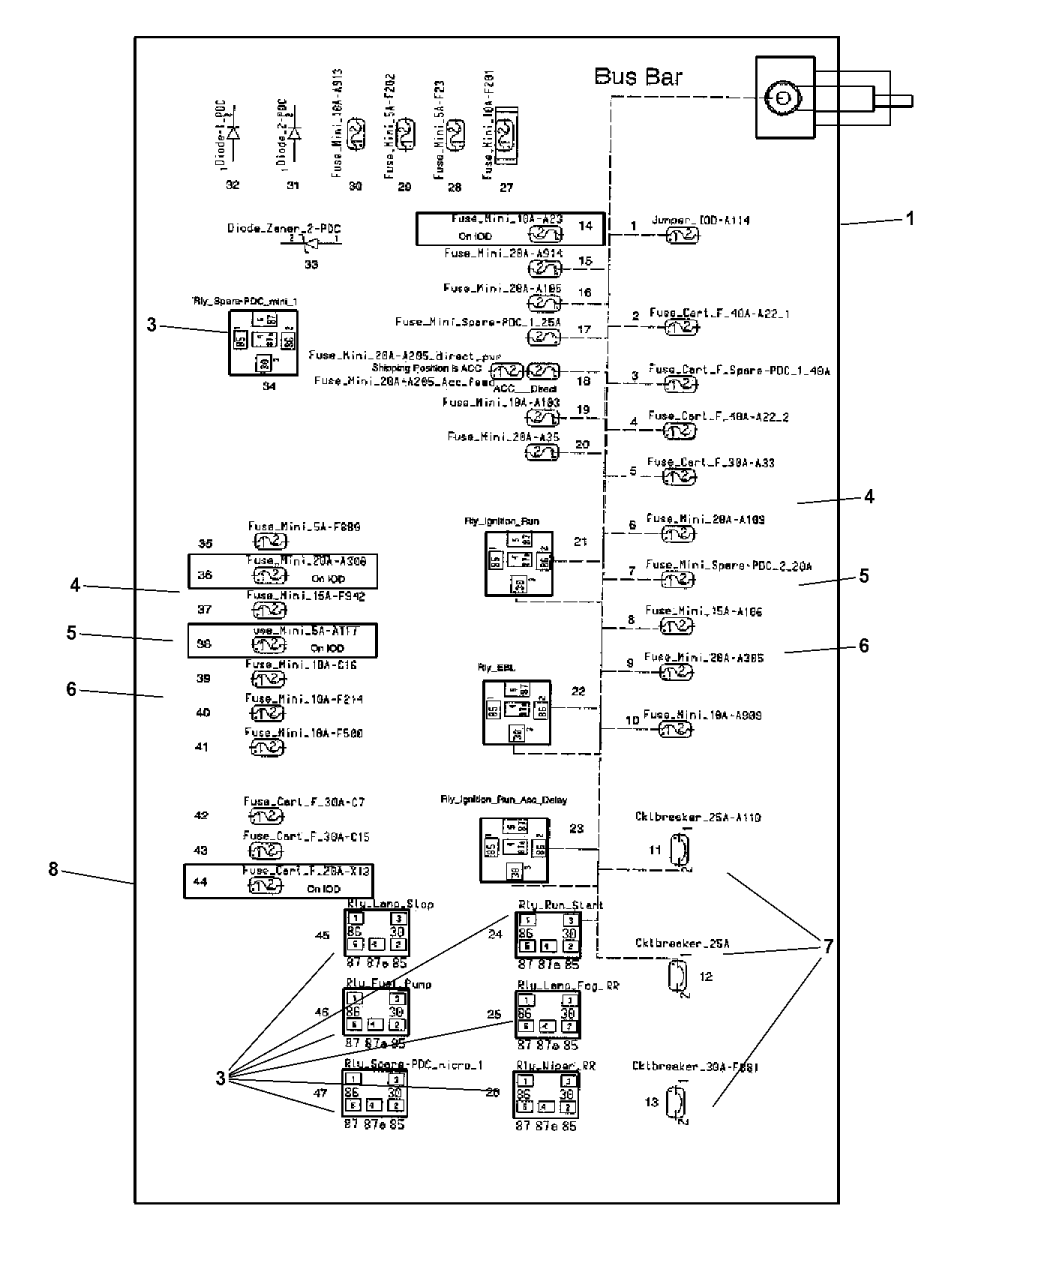 Radio Wiring Diagram For 06 Chrysler 300